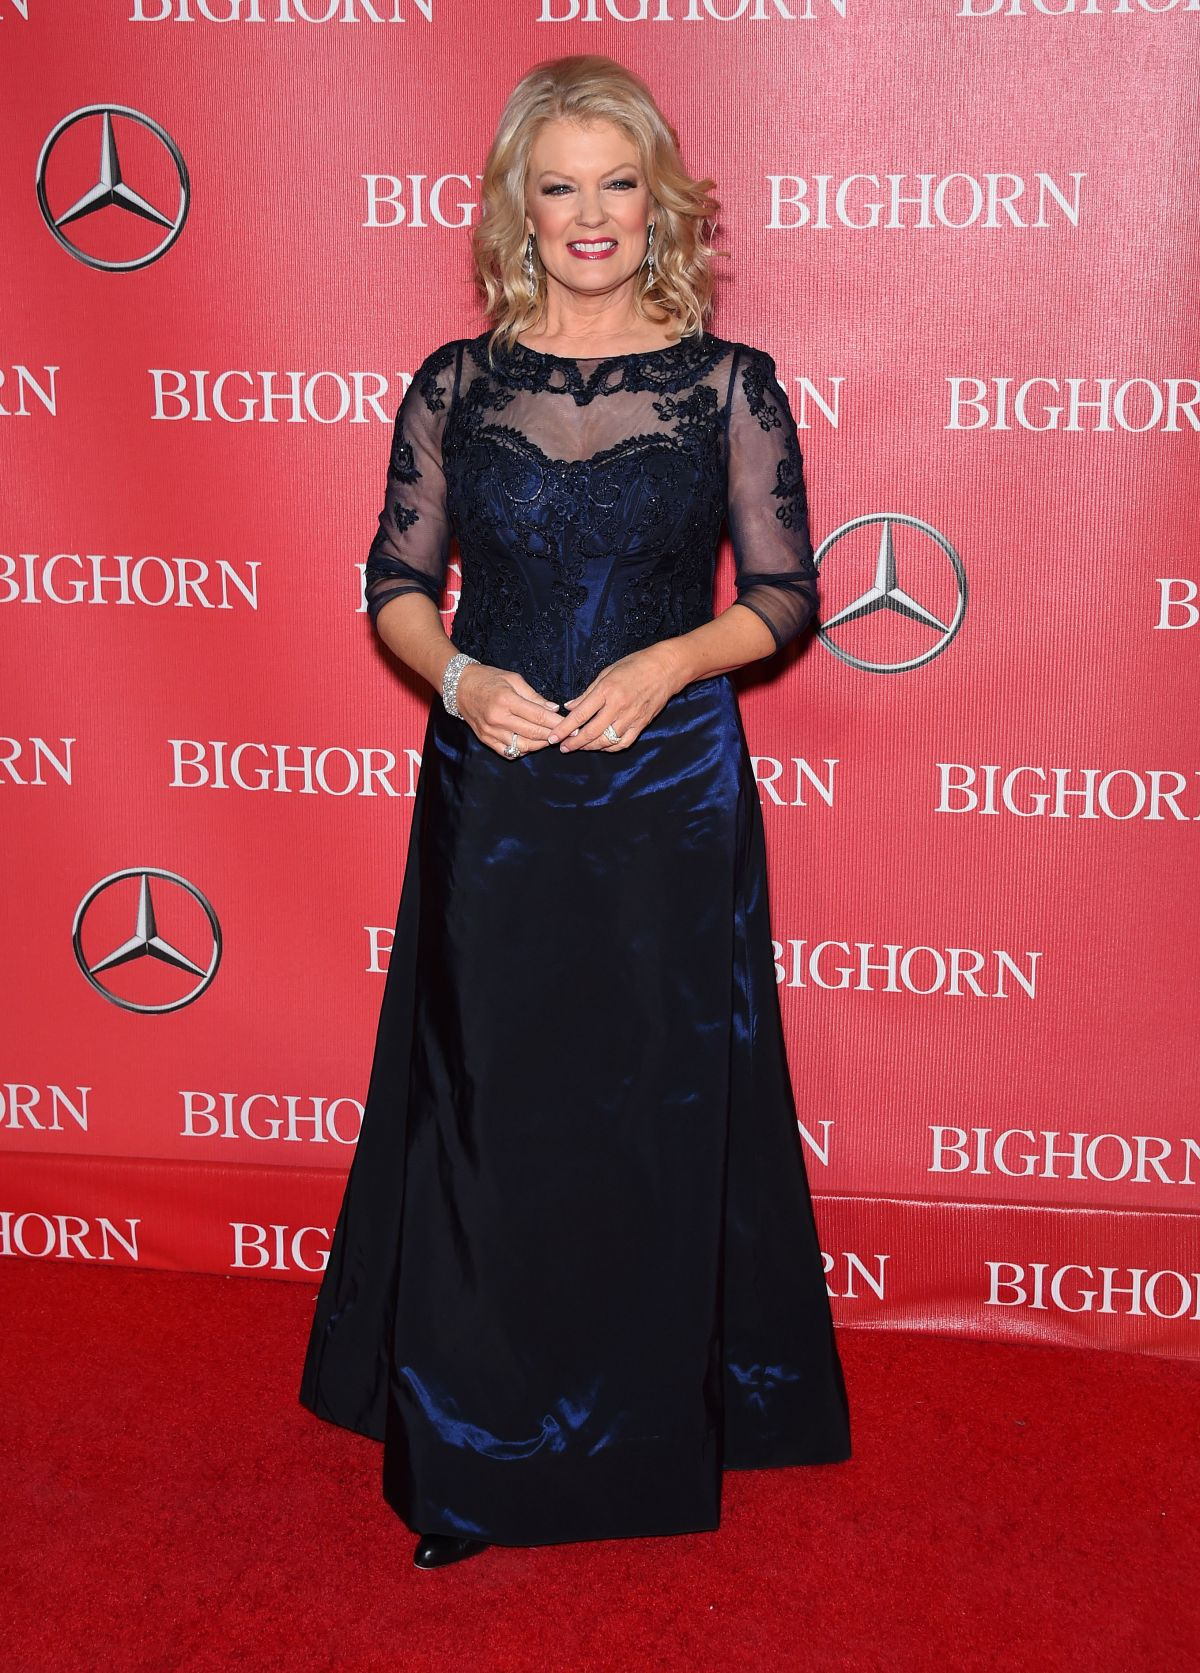 MARY HART at 27th Annual Palm Springs International Film Festival 01/02/2015